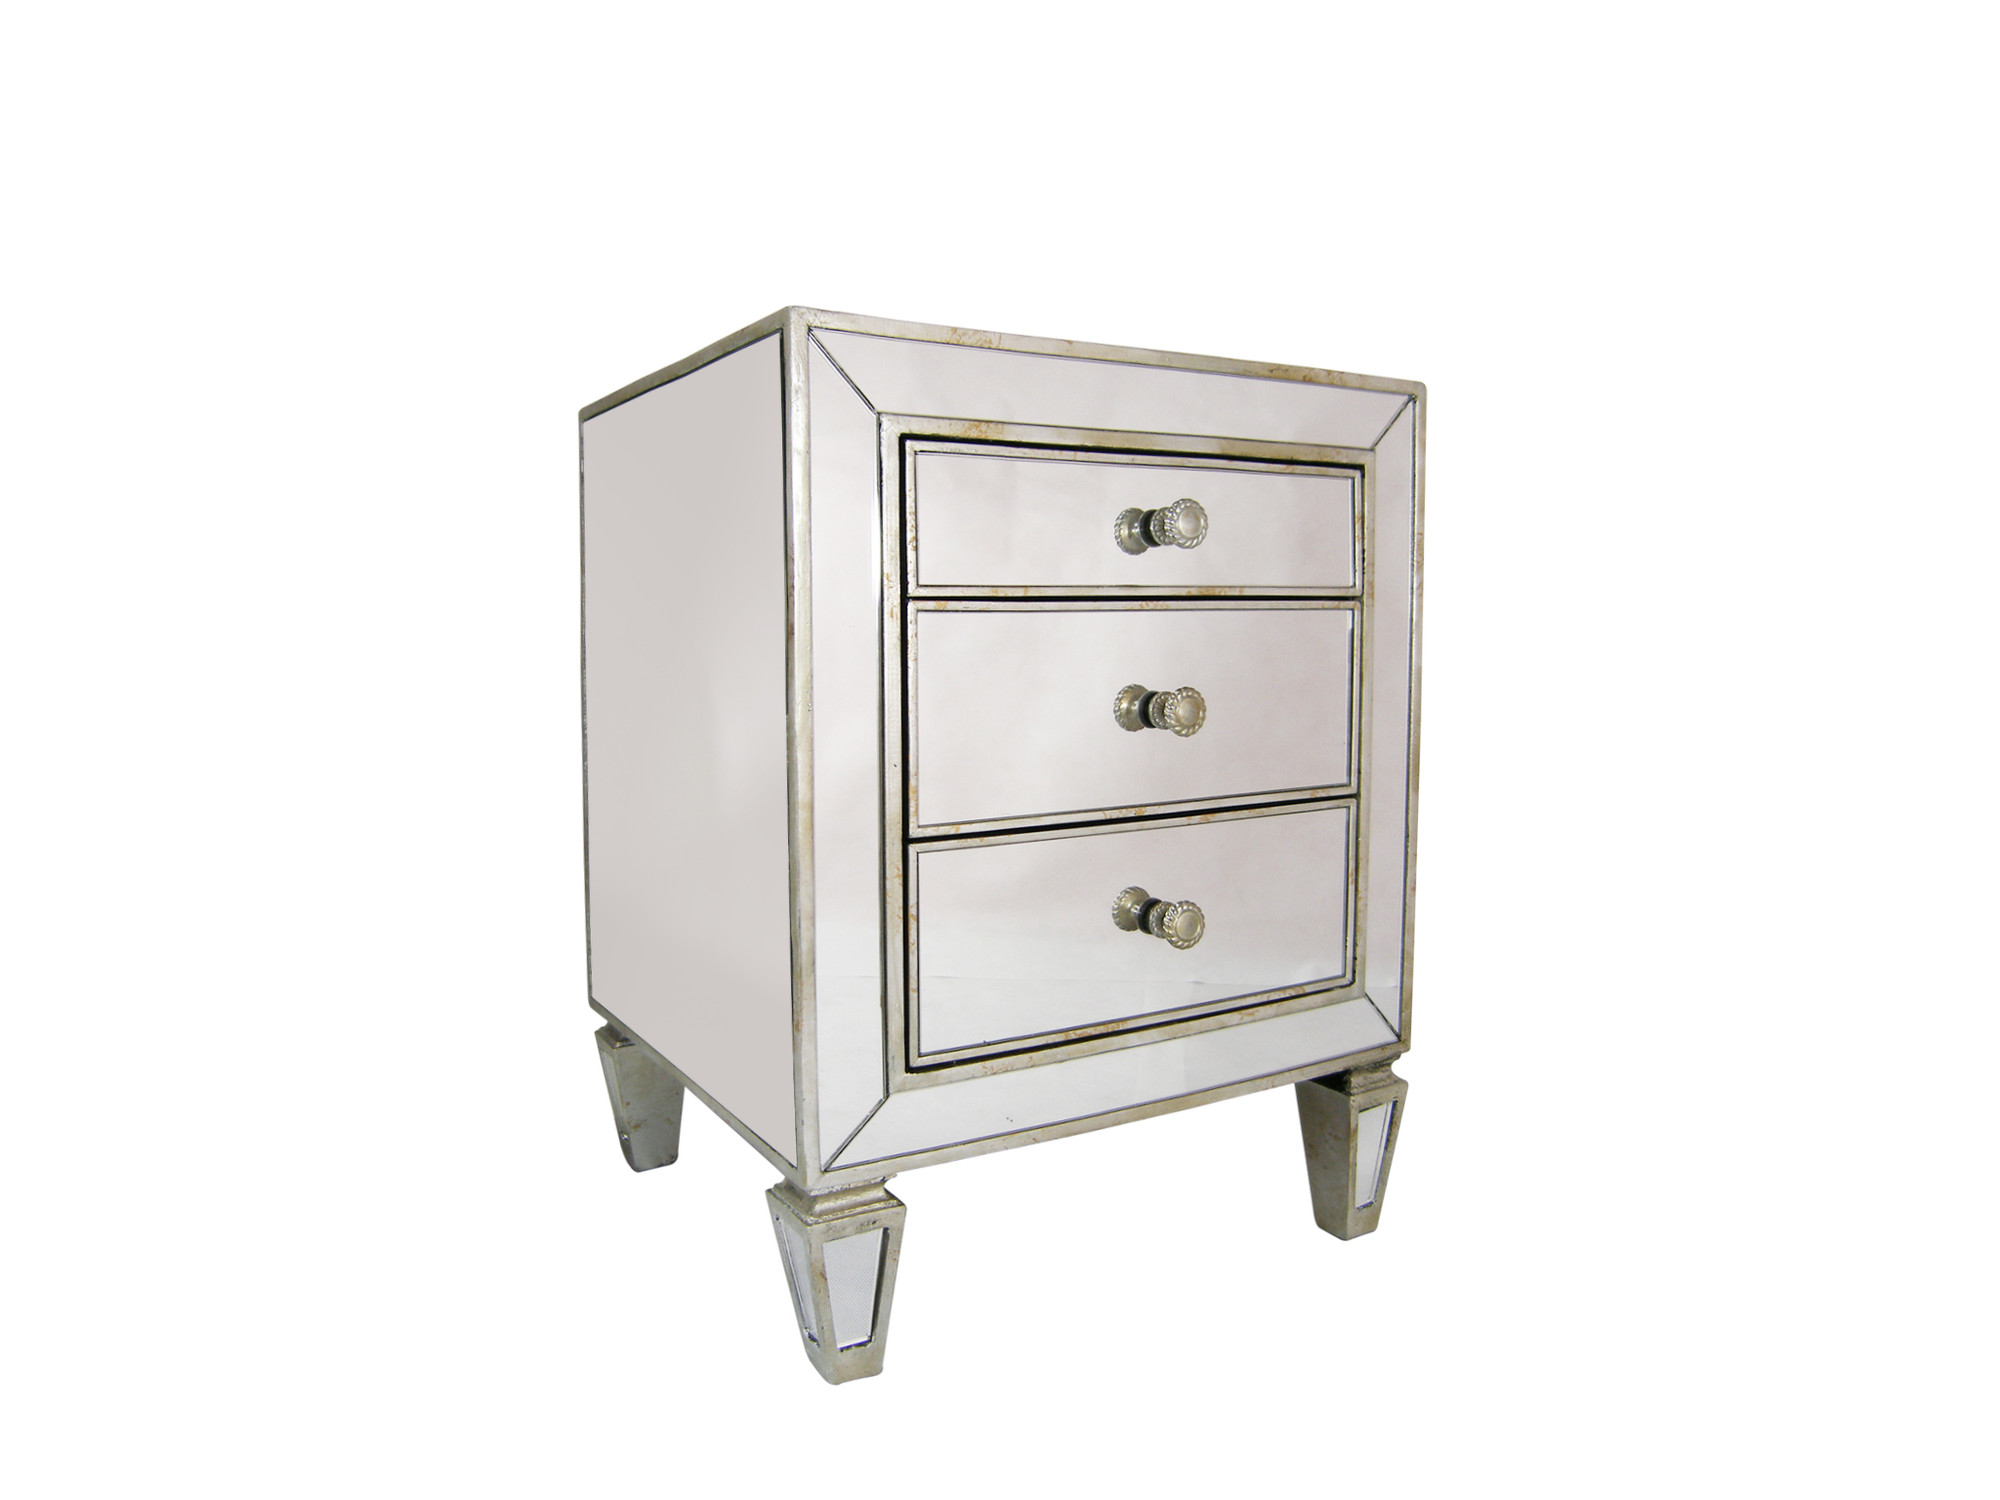 2a76c5709cda SKU #EWEG1199 Sara 3 Drawer Mirrored Bedside Table is also sometimes listed  under the following manufacturer numbers: 41116